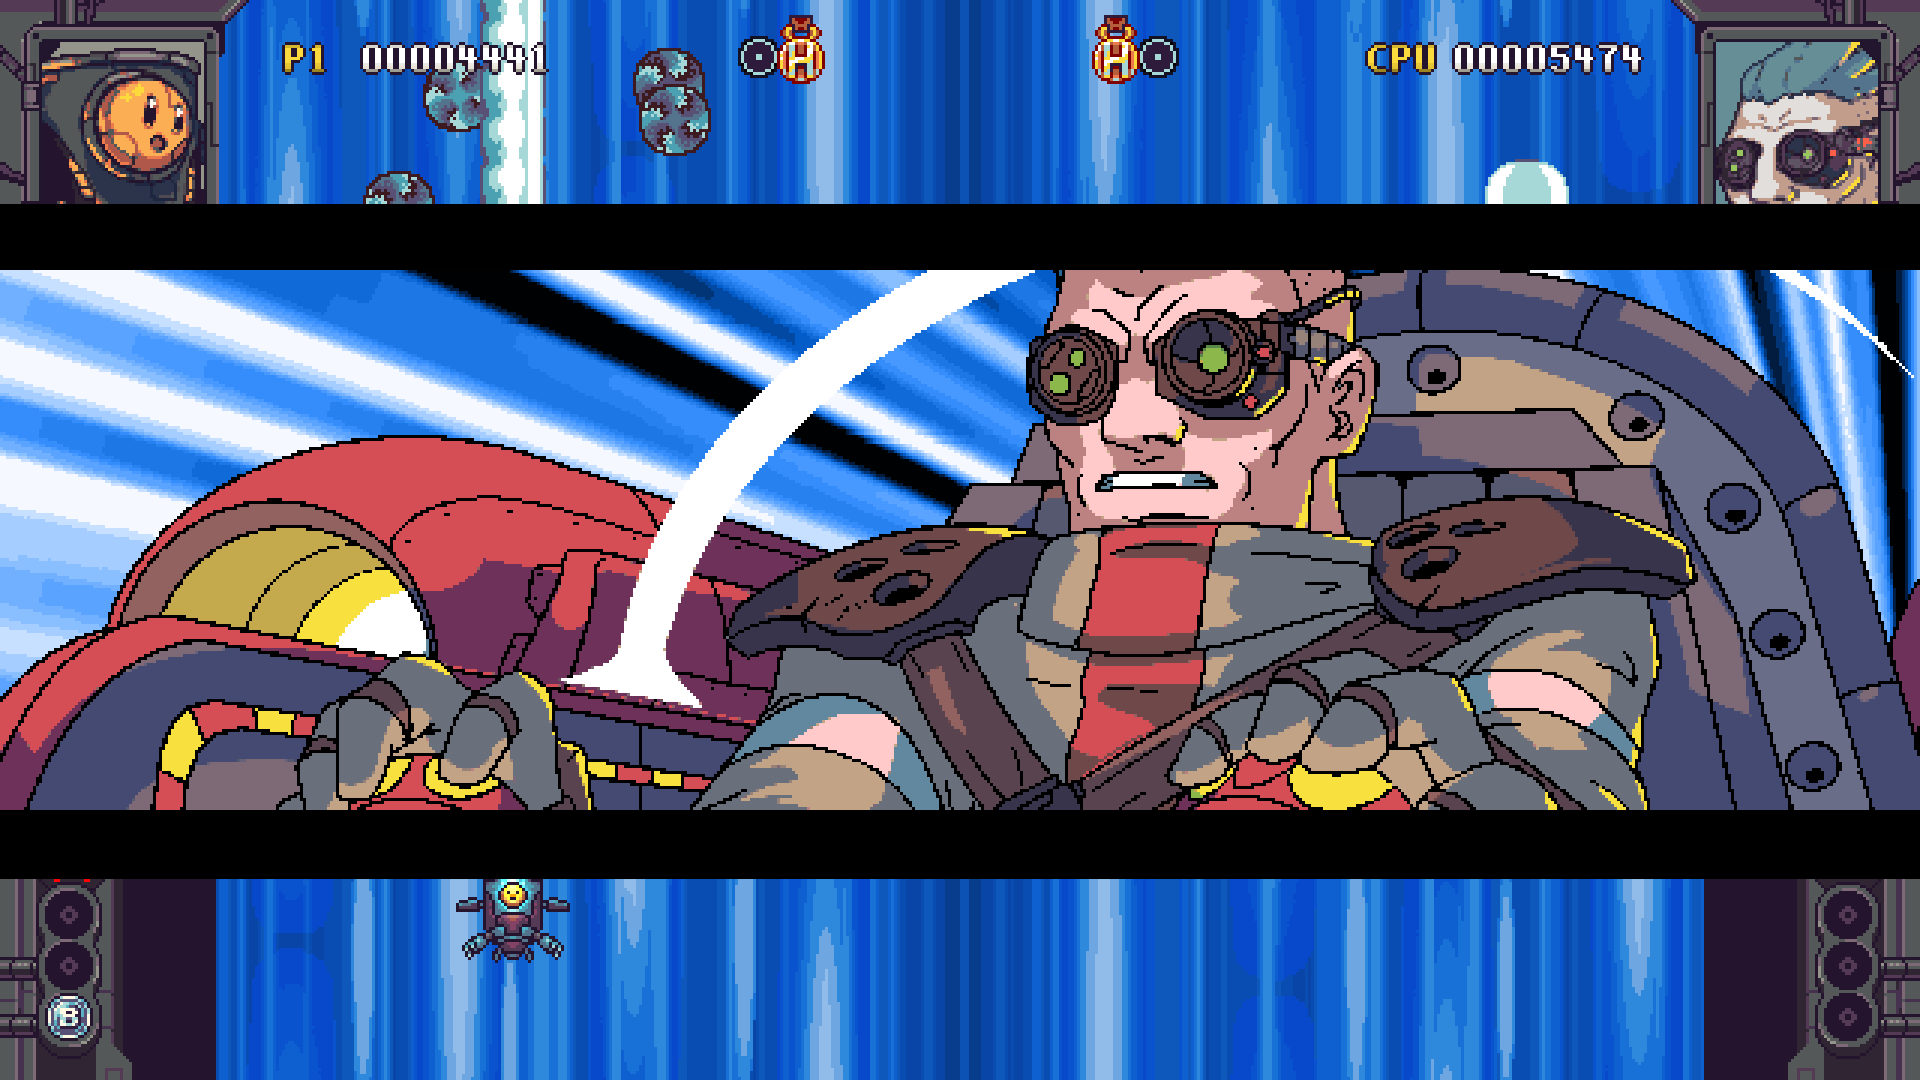 Rival Megagun gameplay screenshot 14 thumbnail